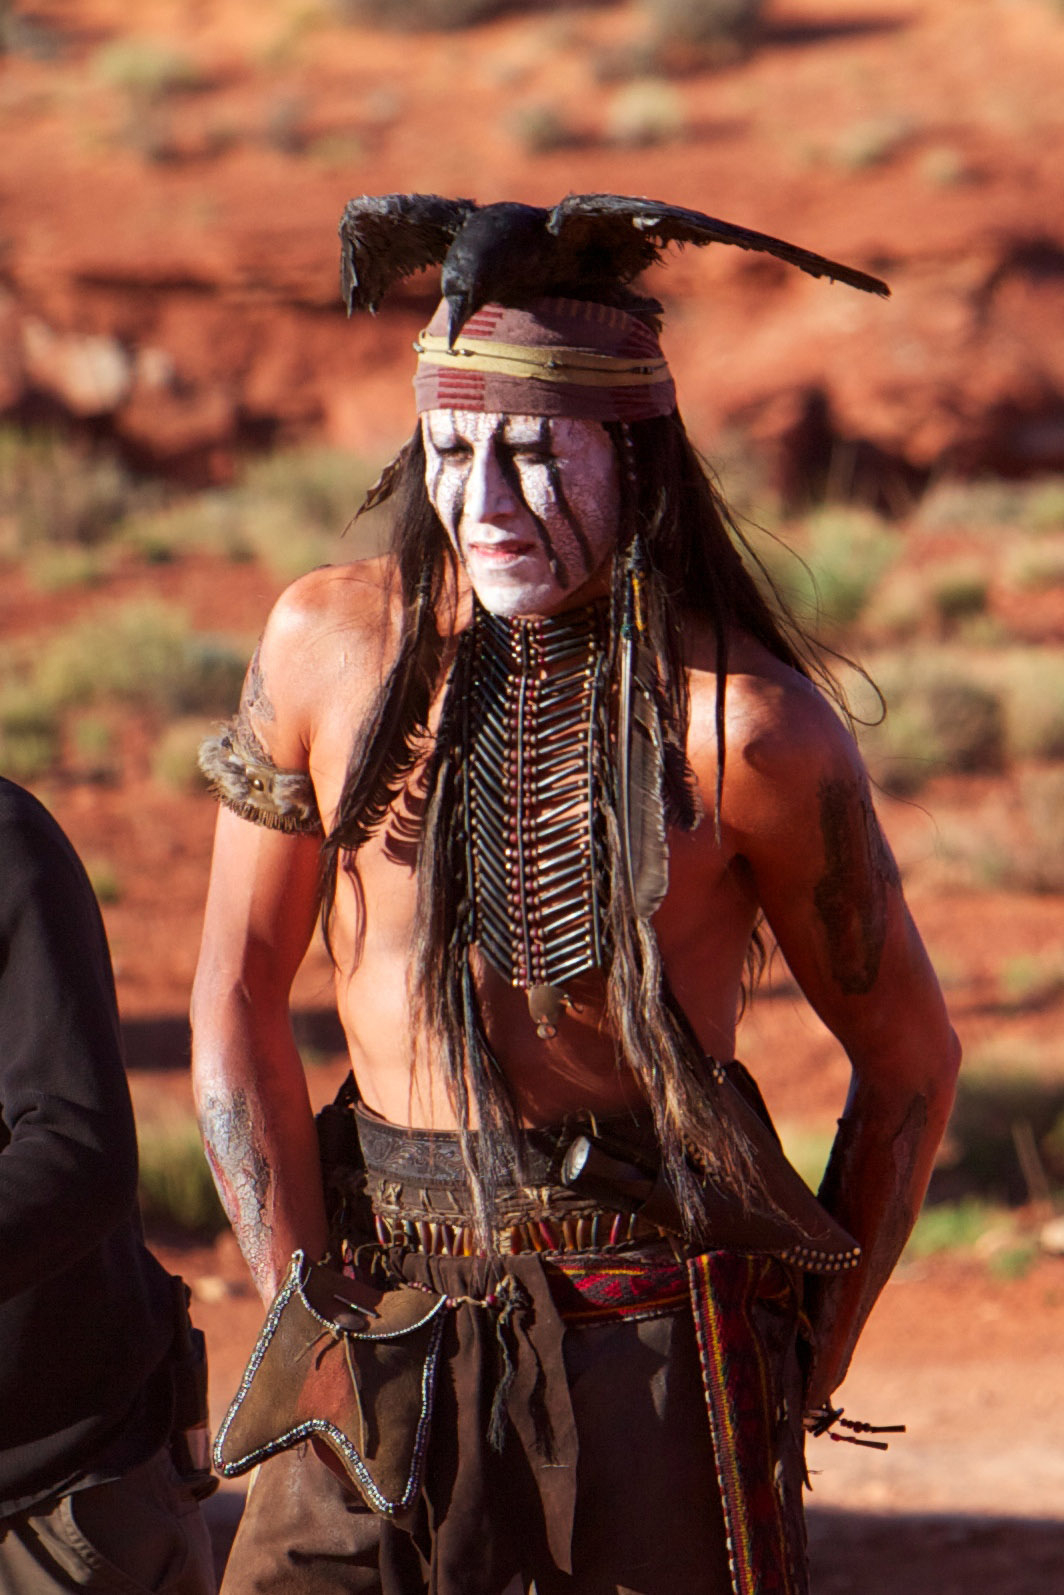 Johnny Depp on the set of 'The Lone Ranger'